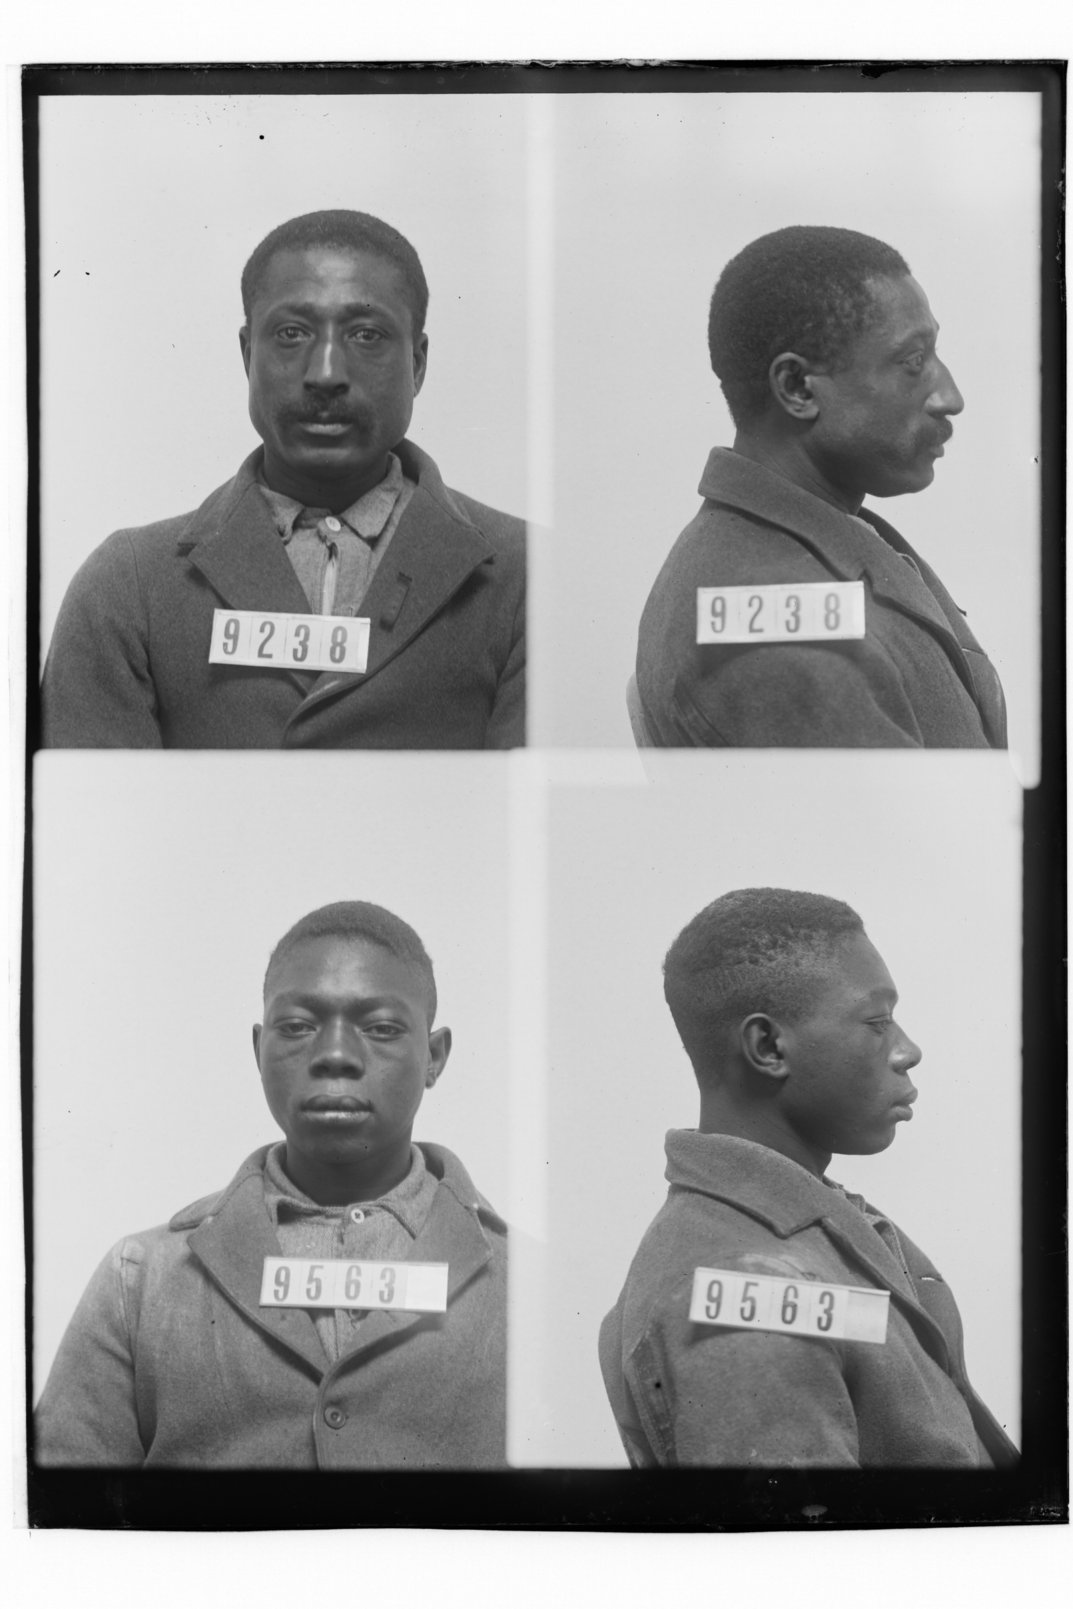 Dudley Payne and Pomp Childs, prisoners 9238 and 9563